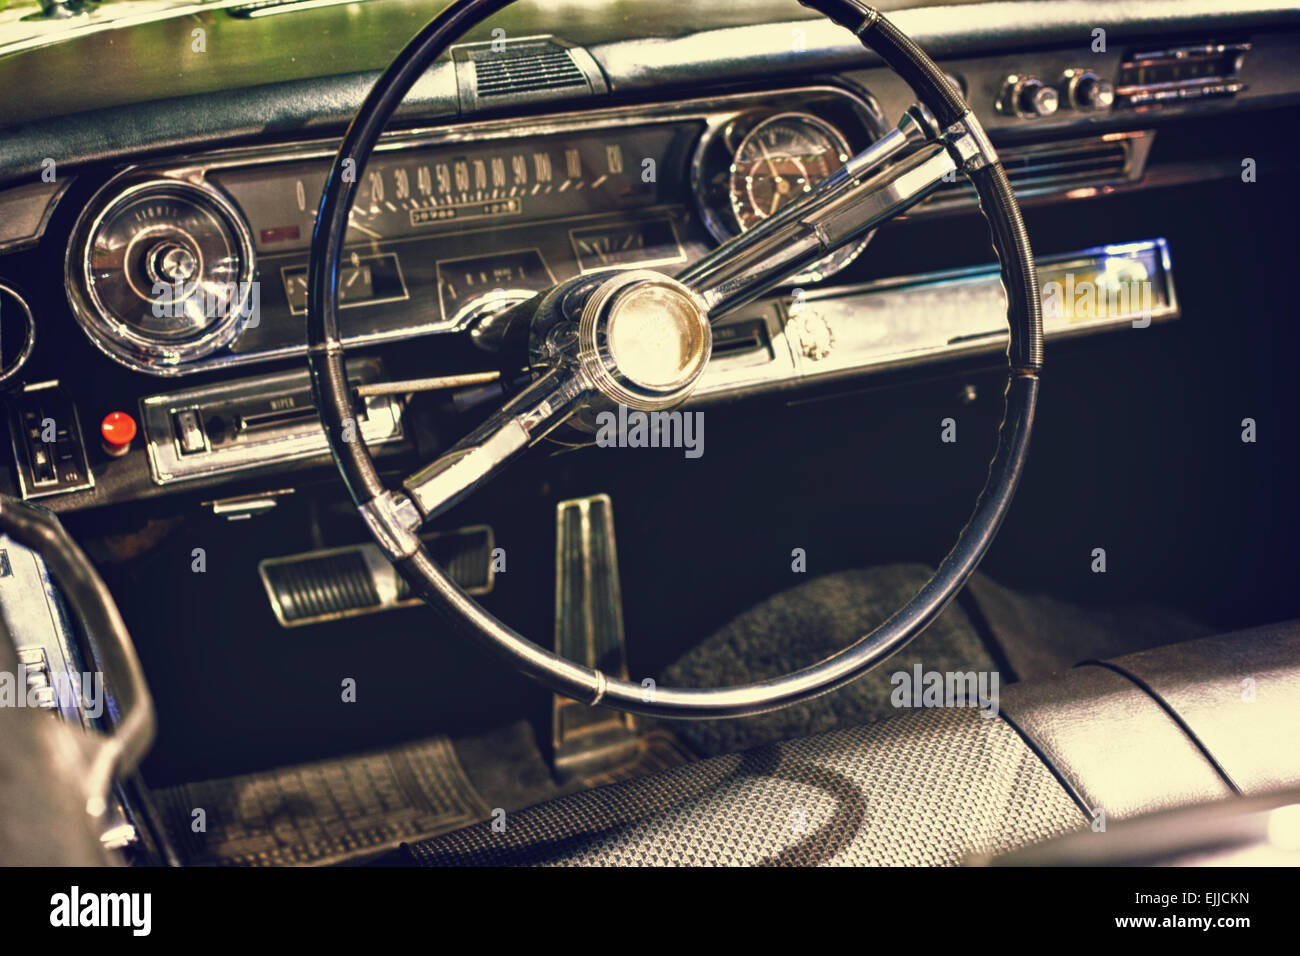 old vintage classic black car steering wheel and dashboard stock photo 80310377 alamy. Black Bedroom Furniture Sets. Home Design Ideas